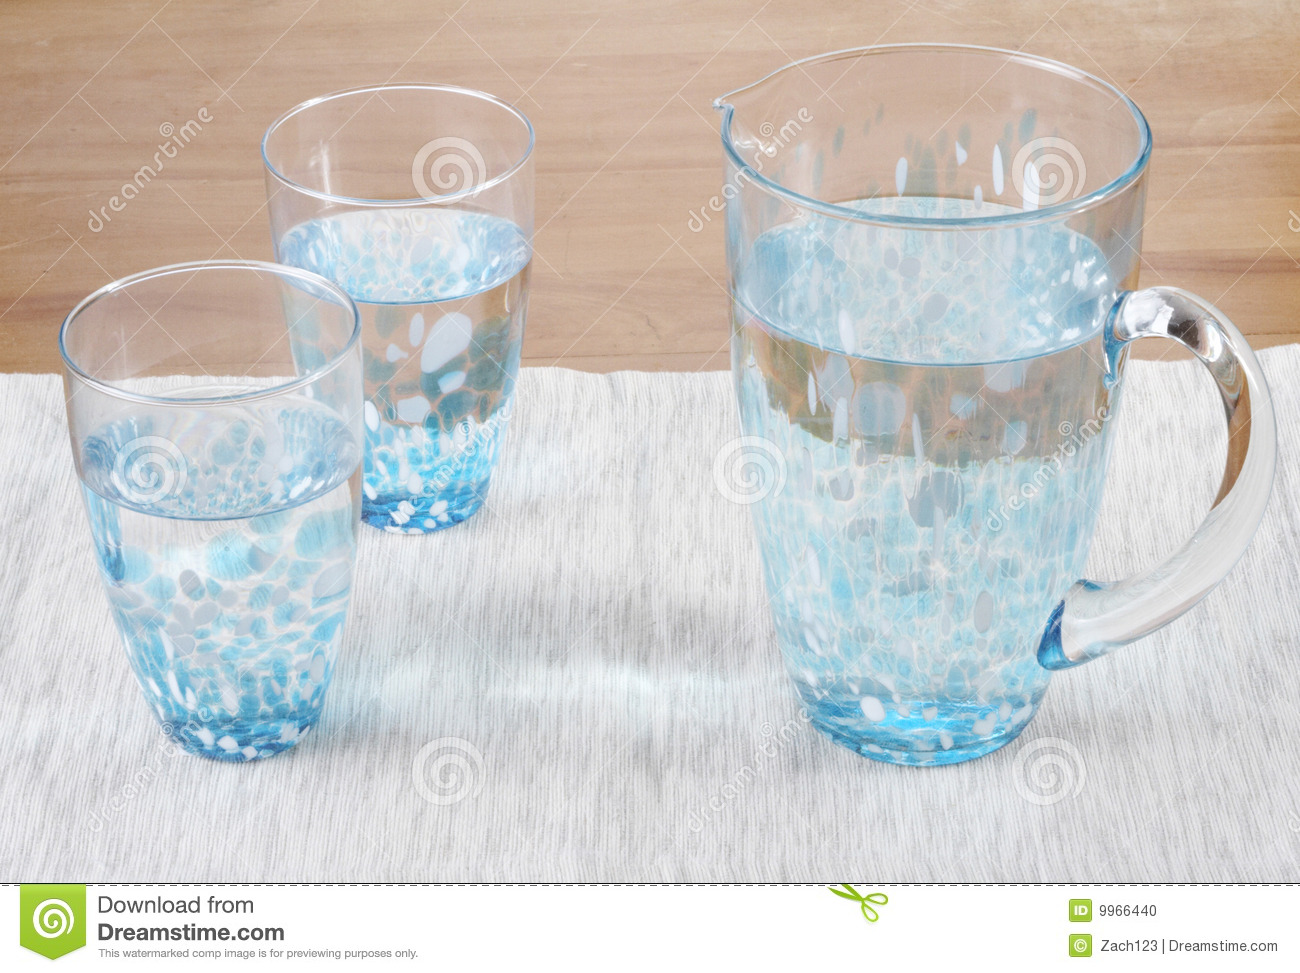 stock photo of two glasses and a pitcher of water stock